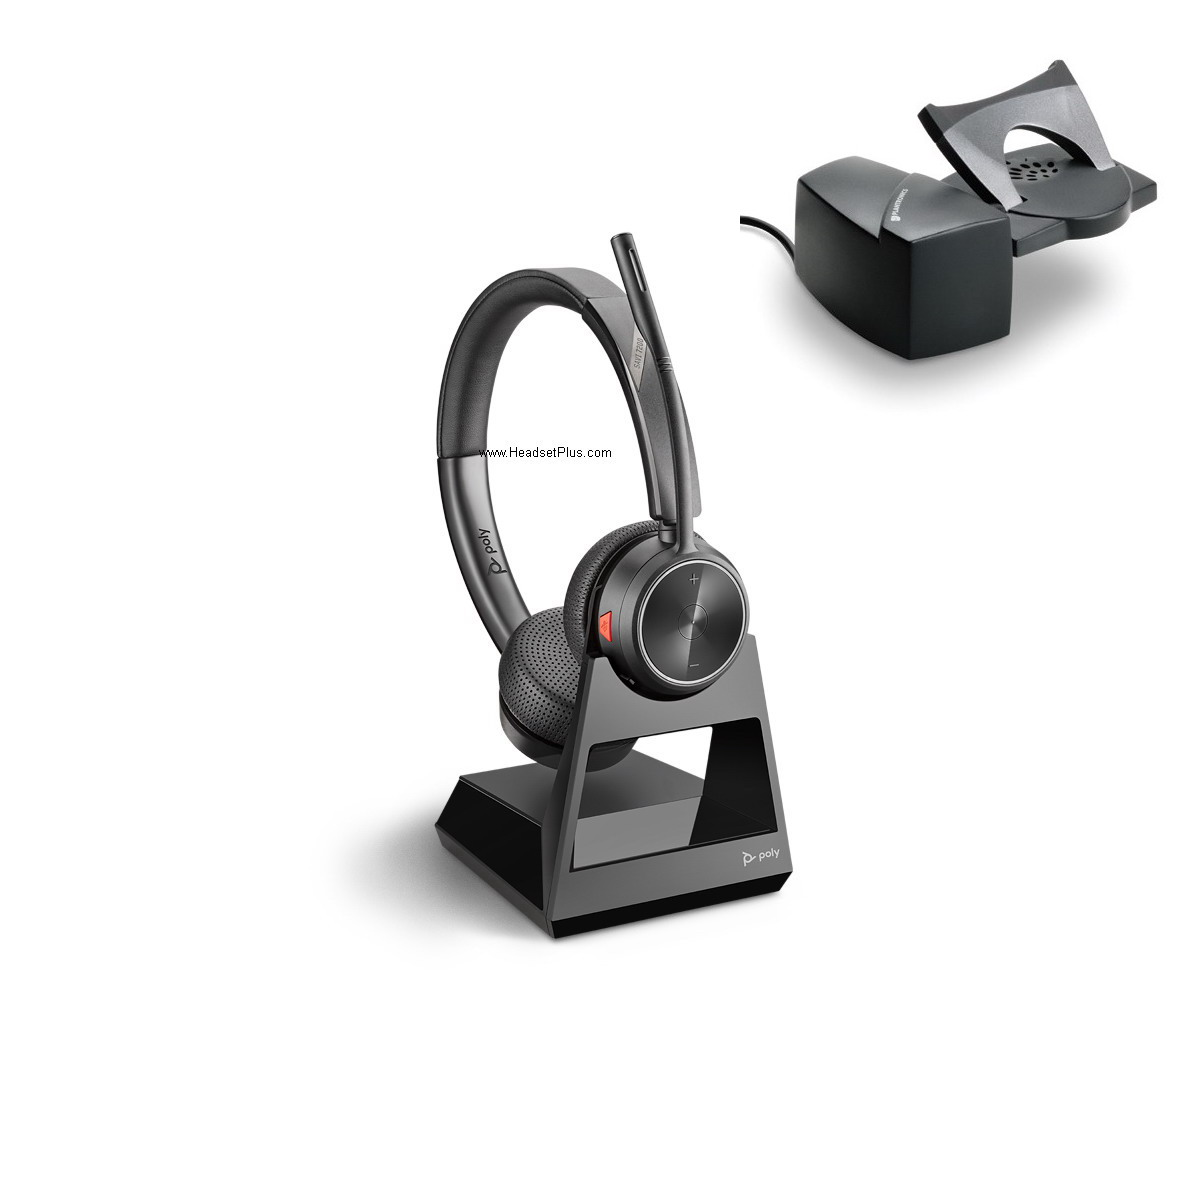 Poly Savi 7220+HL10 Wireless Headset Bundle Package